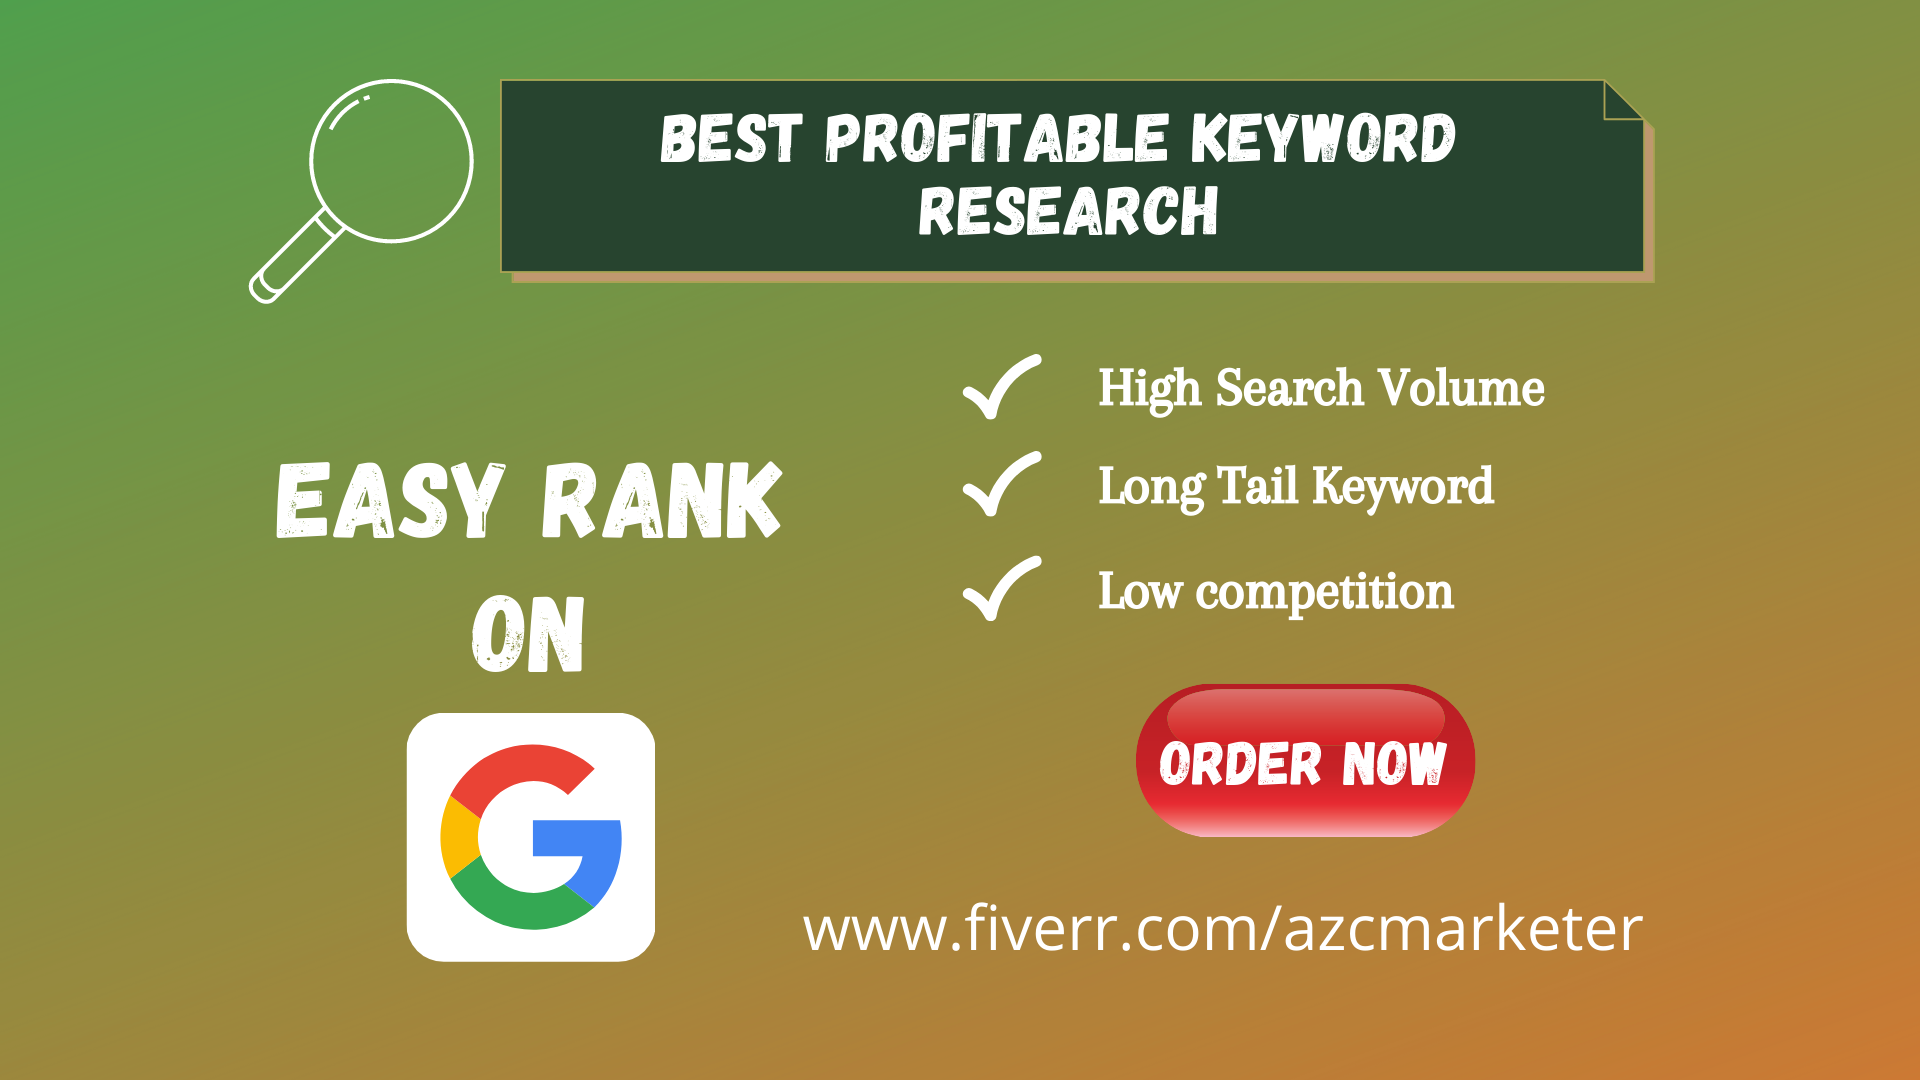 I will do 20 profitable keyword research for easy rank on google.